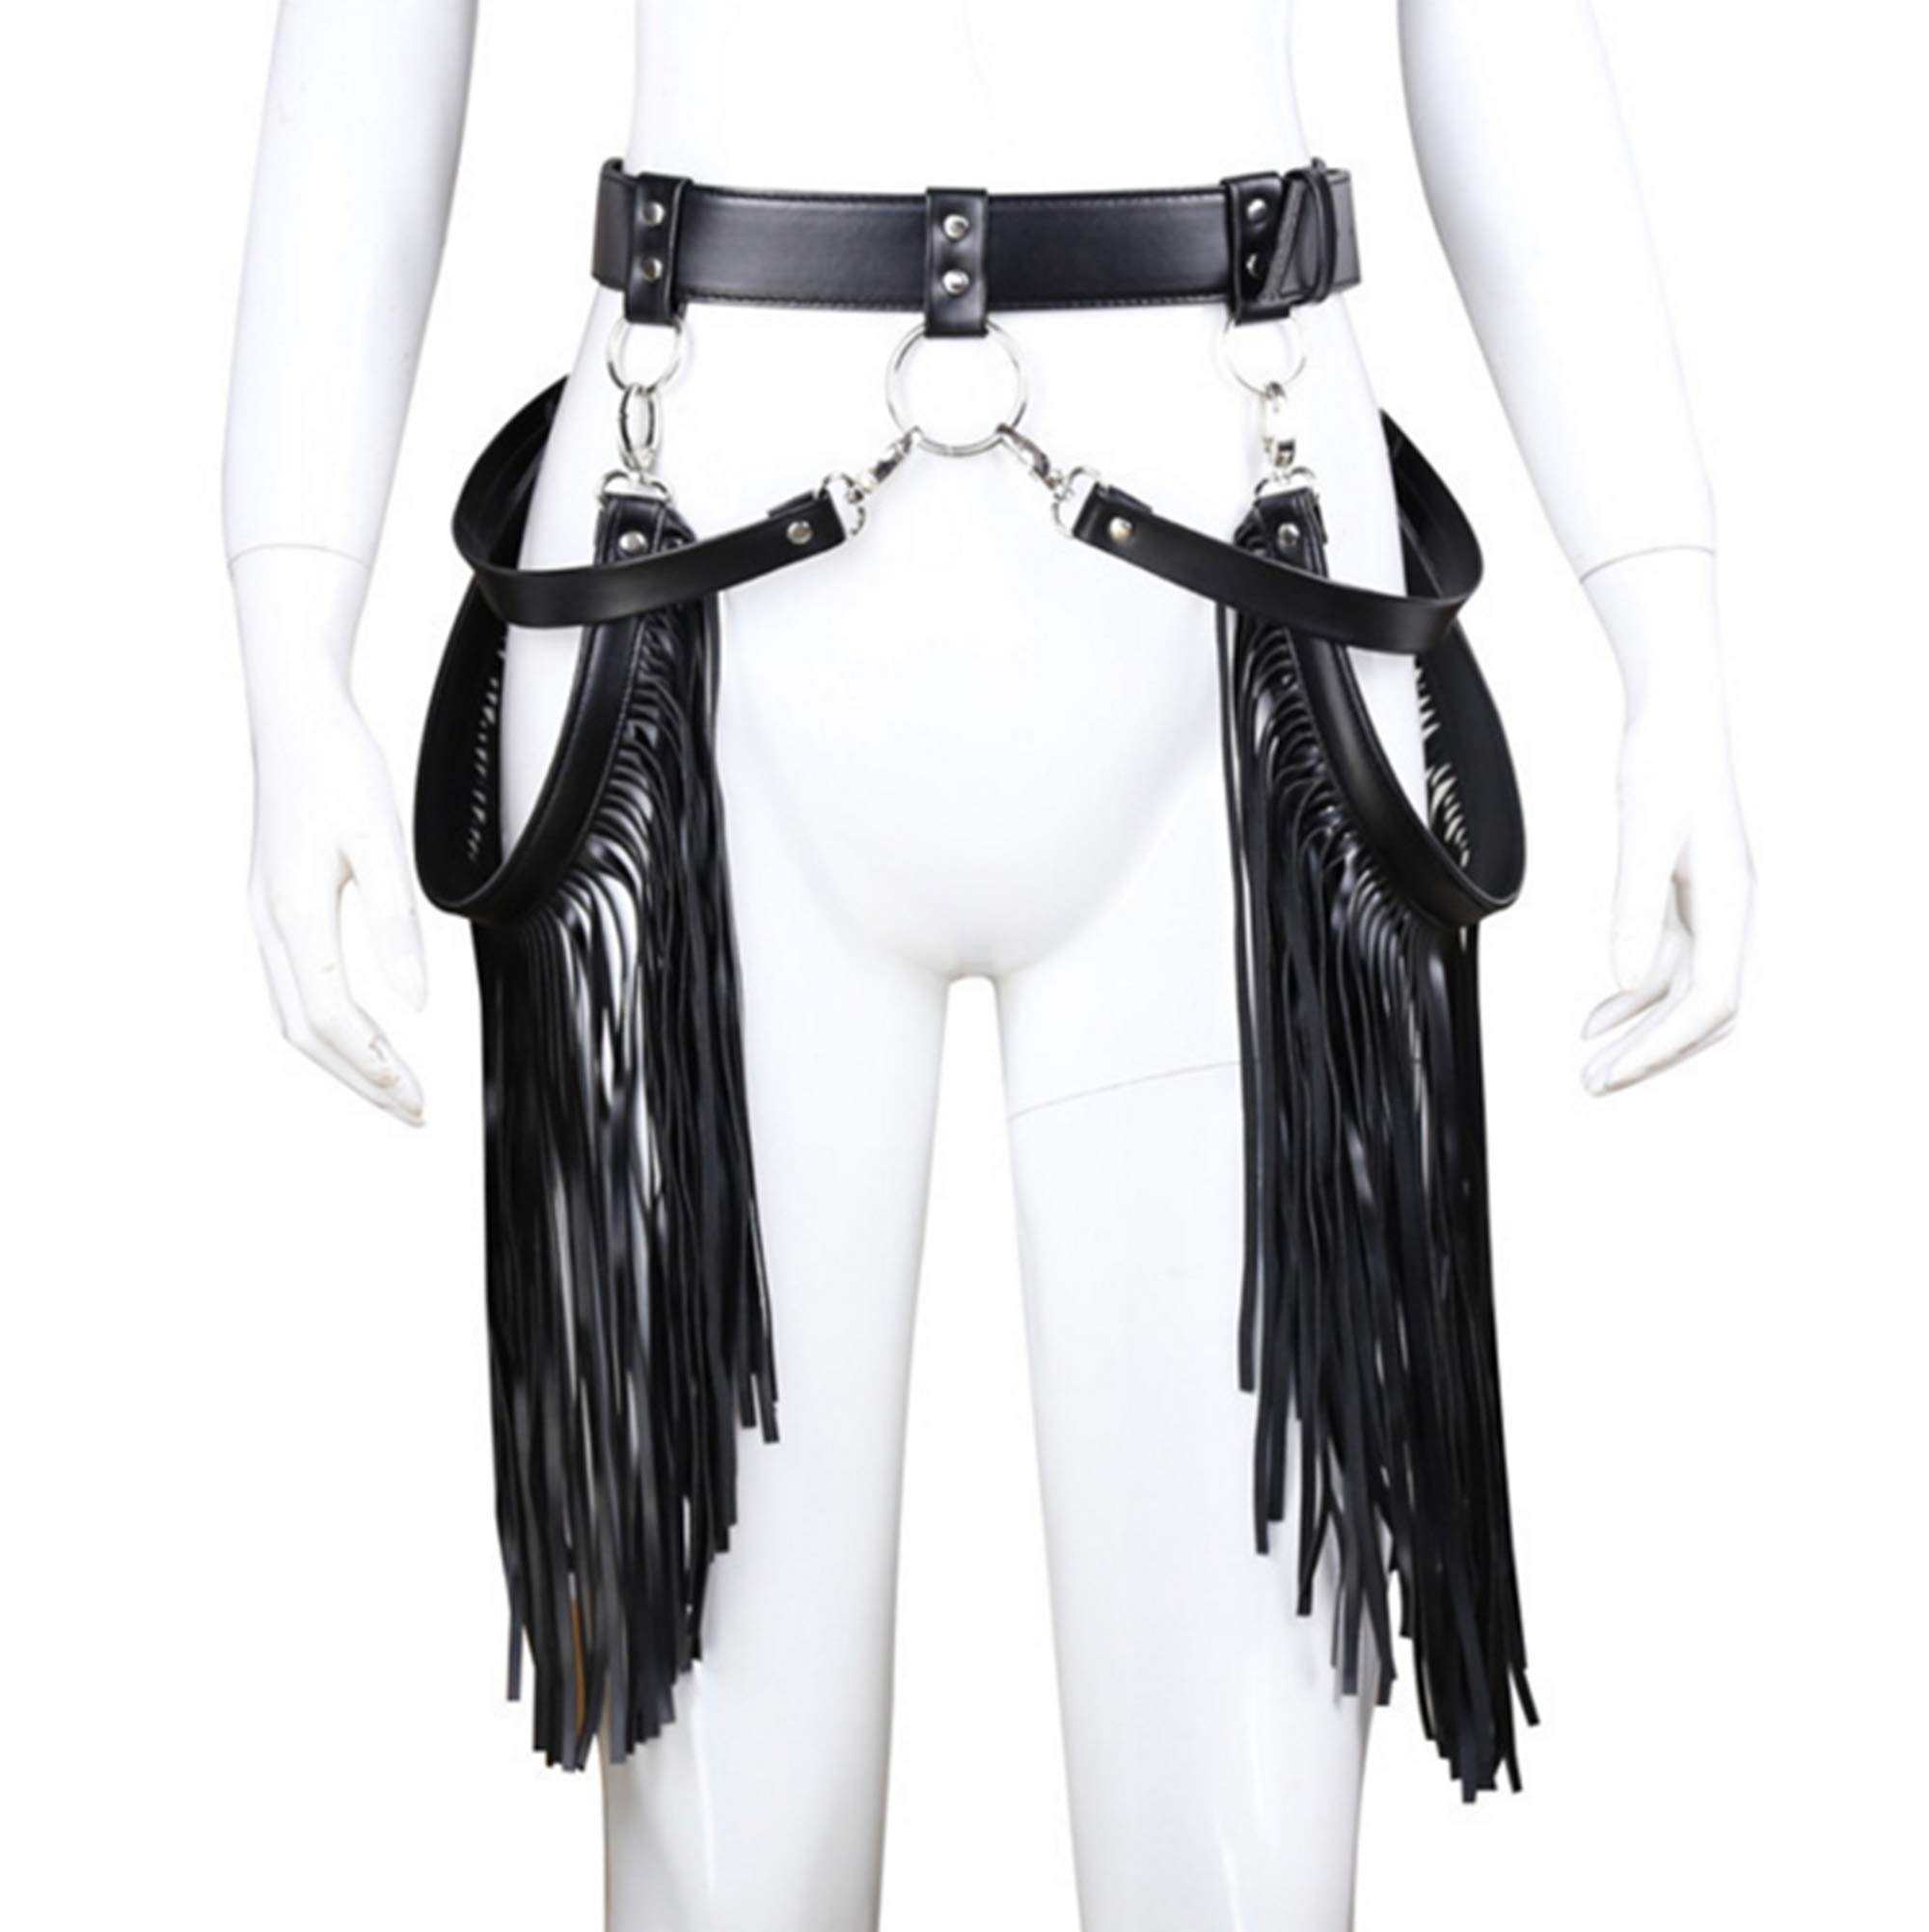 mywaxberry Faux Leather BDSM Sexy Erotic Restraint Tassel Decorative Pants Couple Health Products